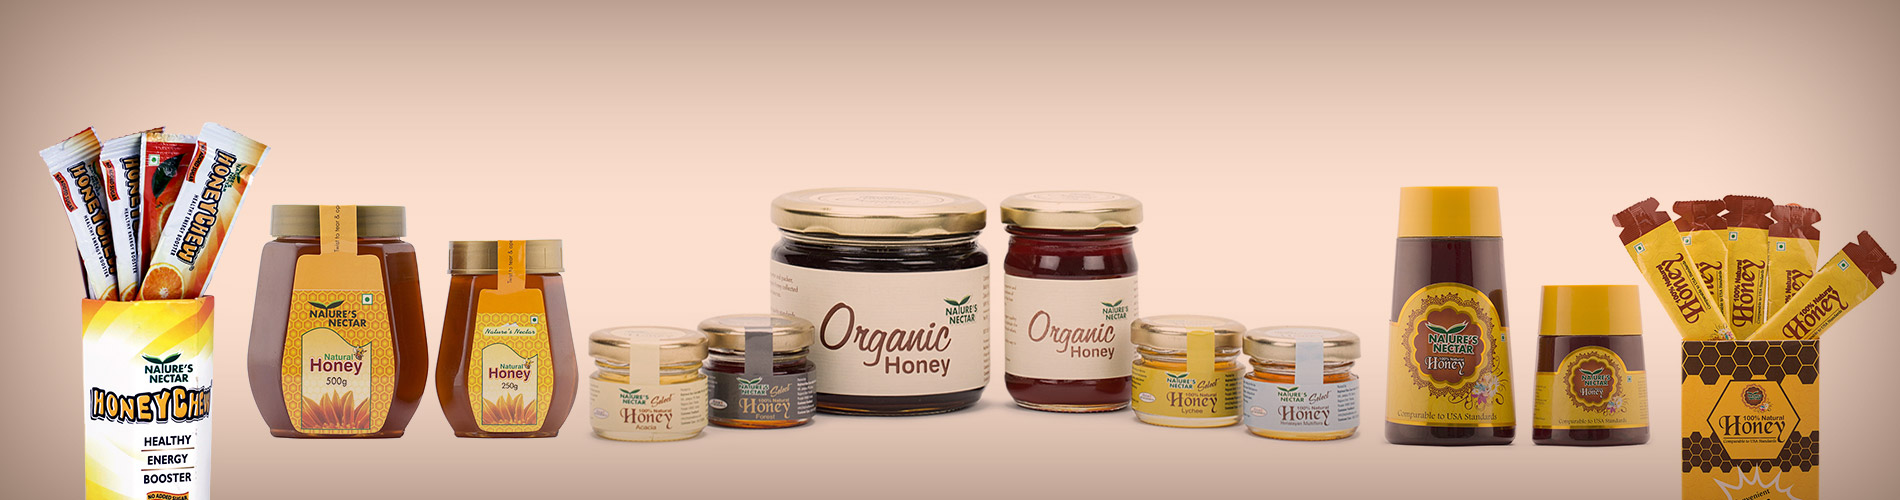 Indian Honey Manufacturers, Honey Suppliers From India, Natural